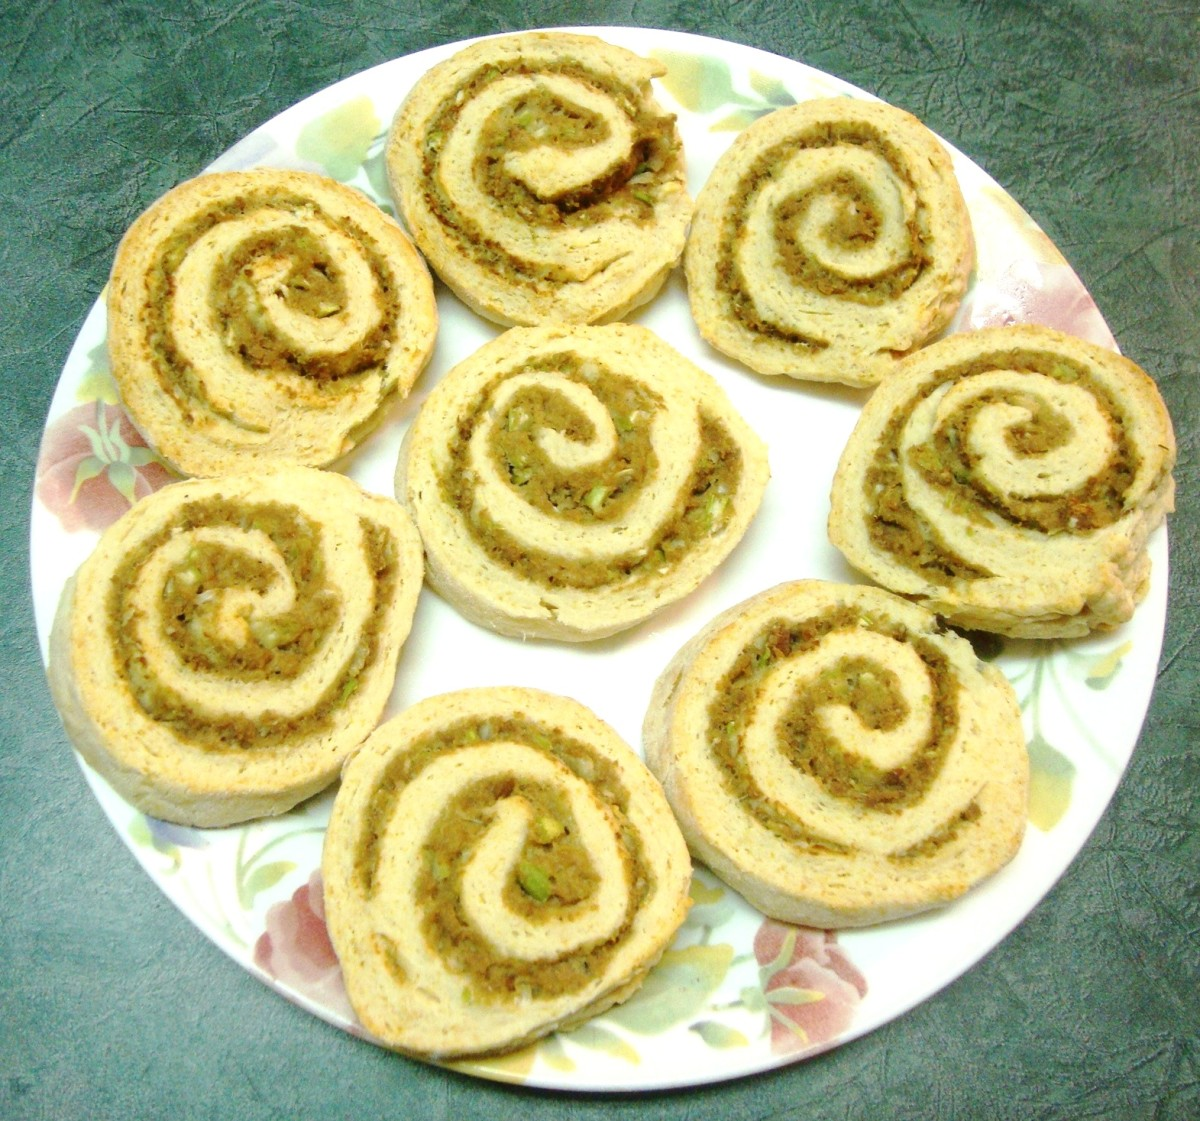 These are biscuits with a tasty twist. A meat filling peeks out from biscuits spirals.